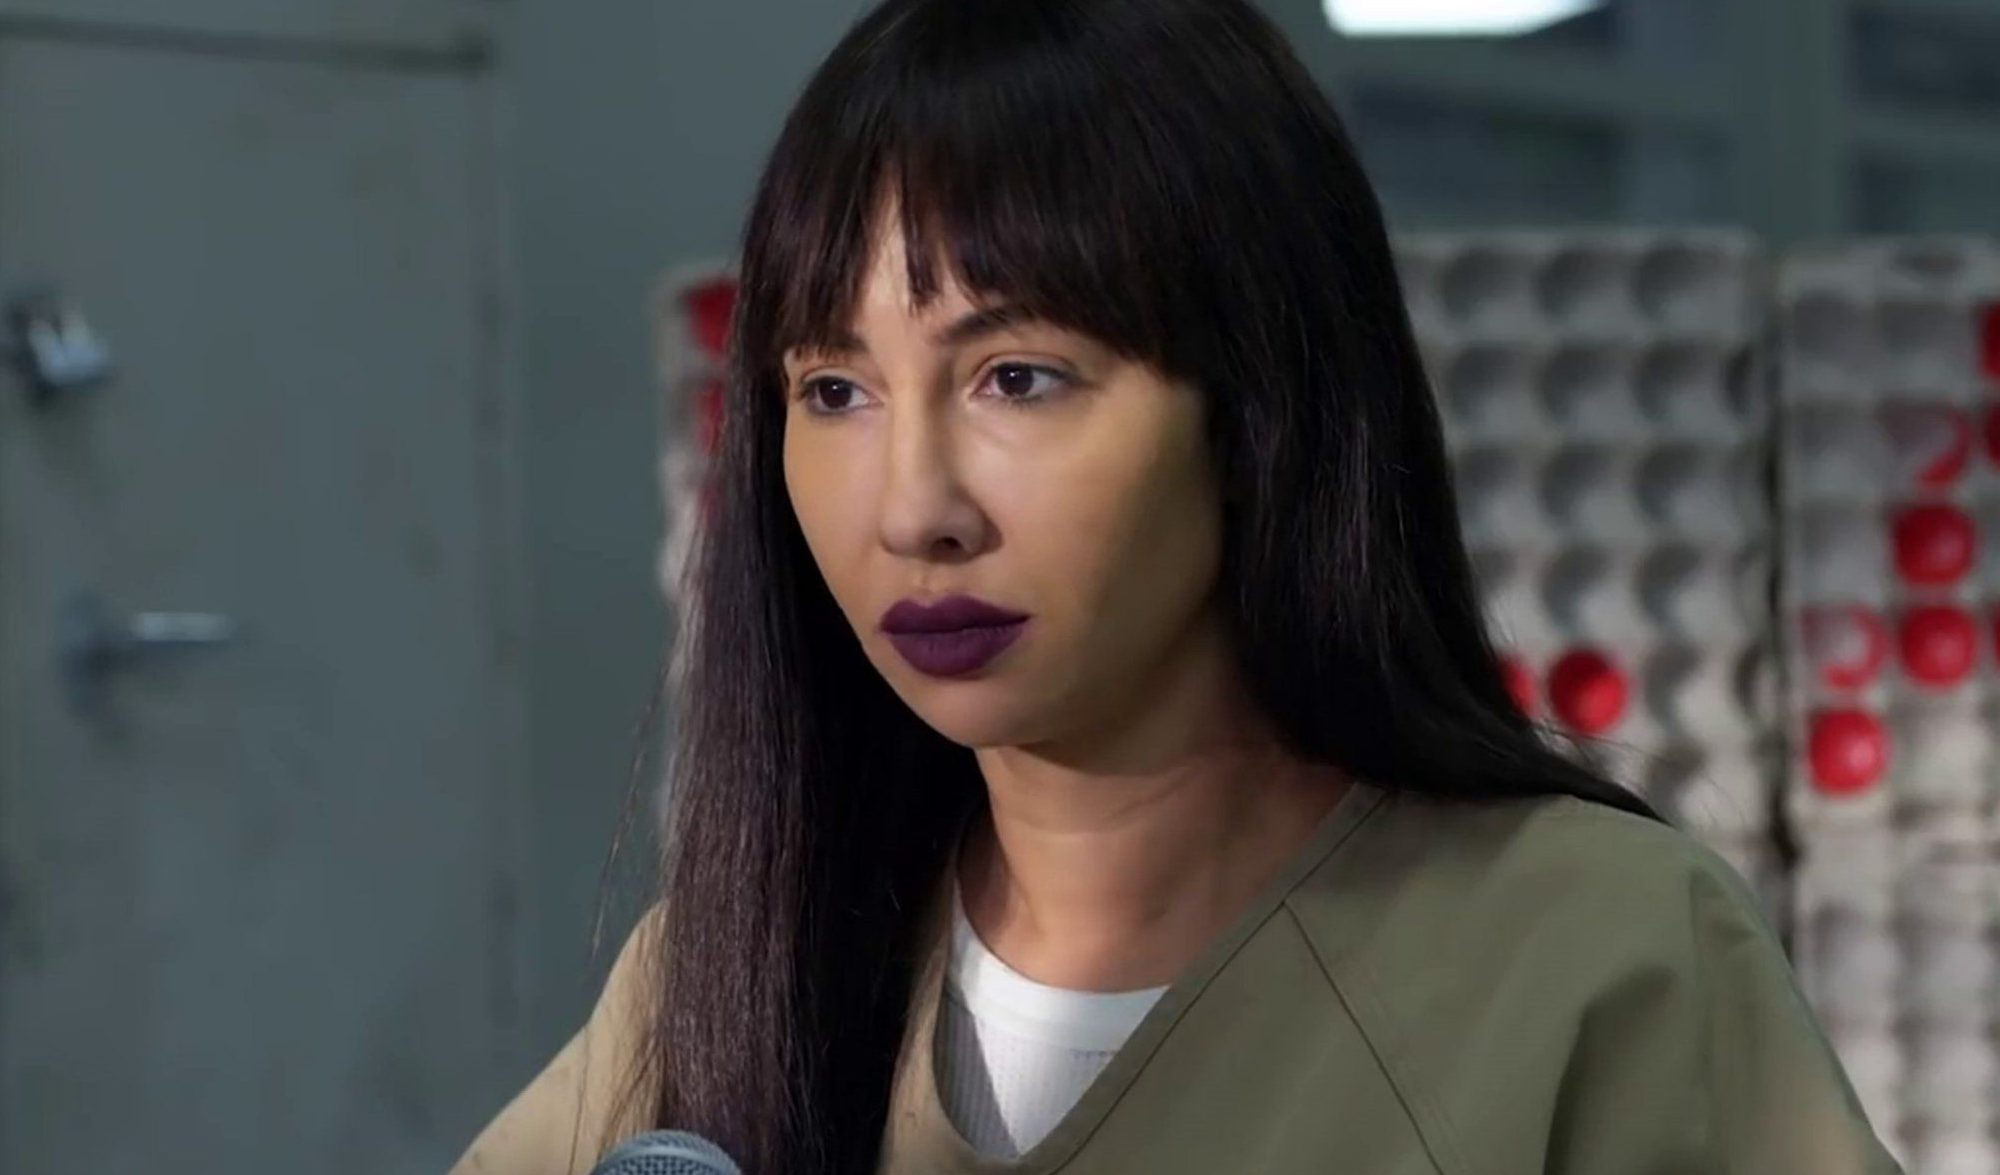 Orange Is The New Black's Jackie Cruz calls out white privilege in battle against prejudice: 'Speak up more'